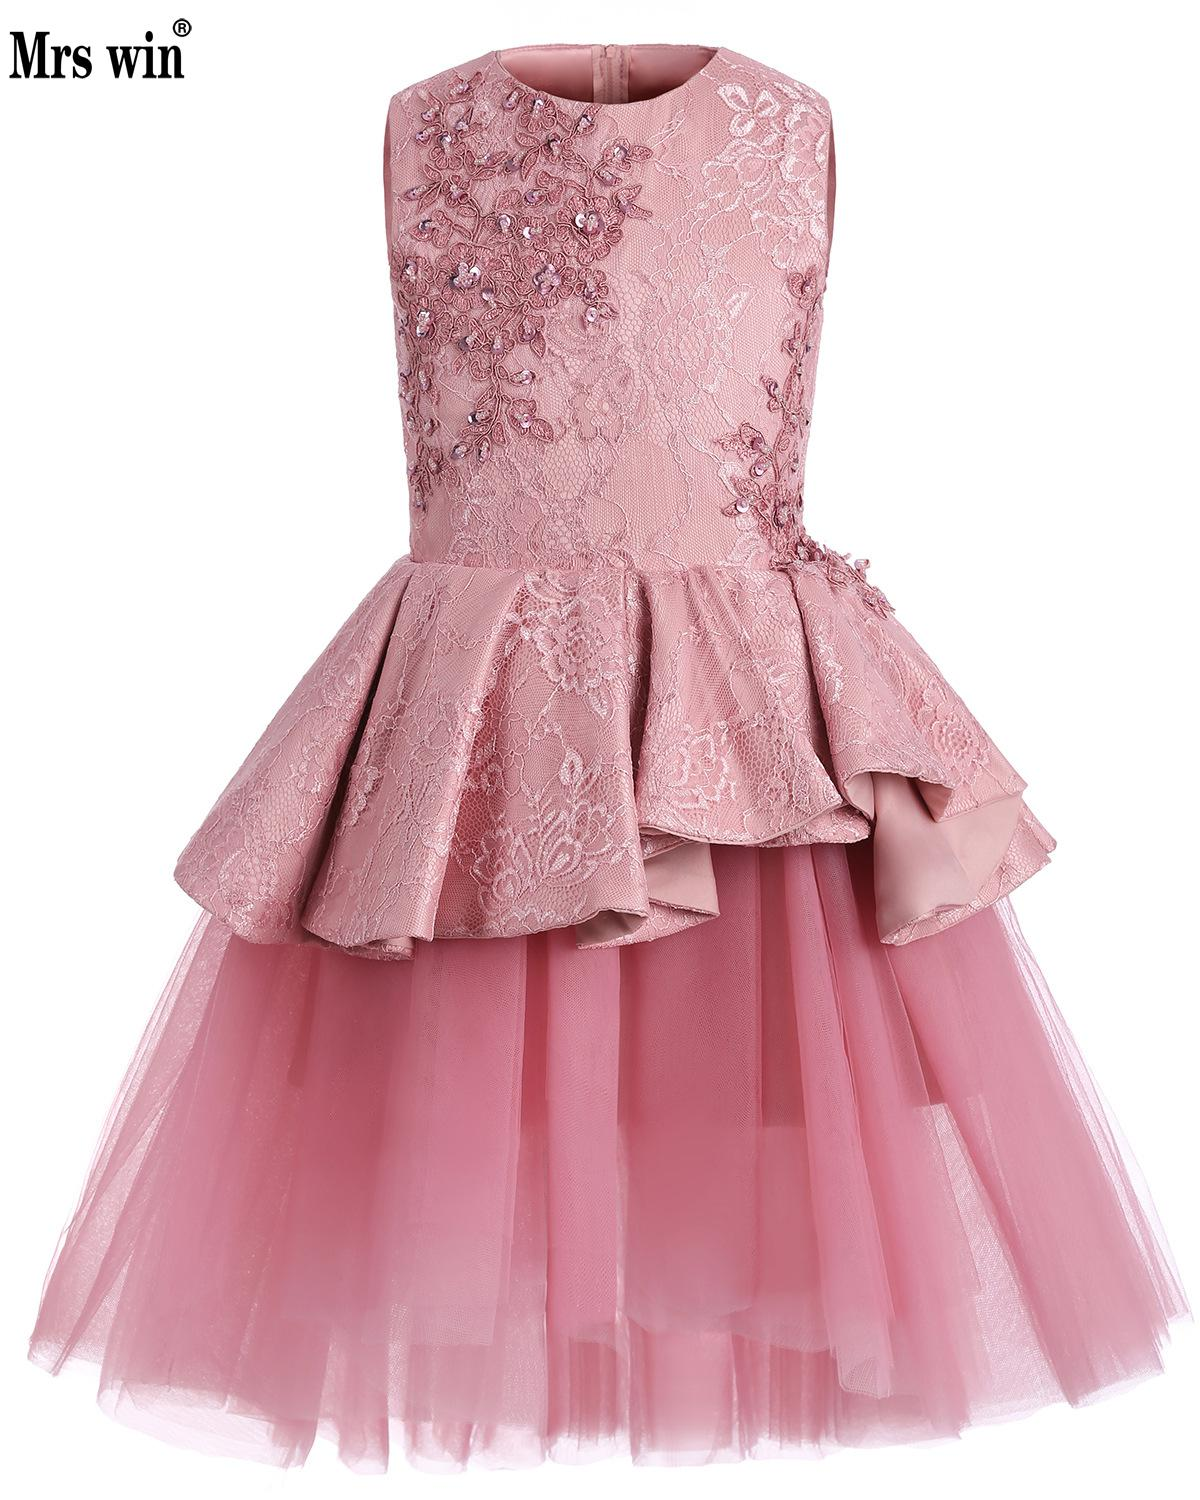 Deep Pink Princess Little Flower Girls Dresses For Weddings Kids Children Party Dresses 2018 Ball Gown Communion Dresses